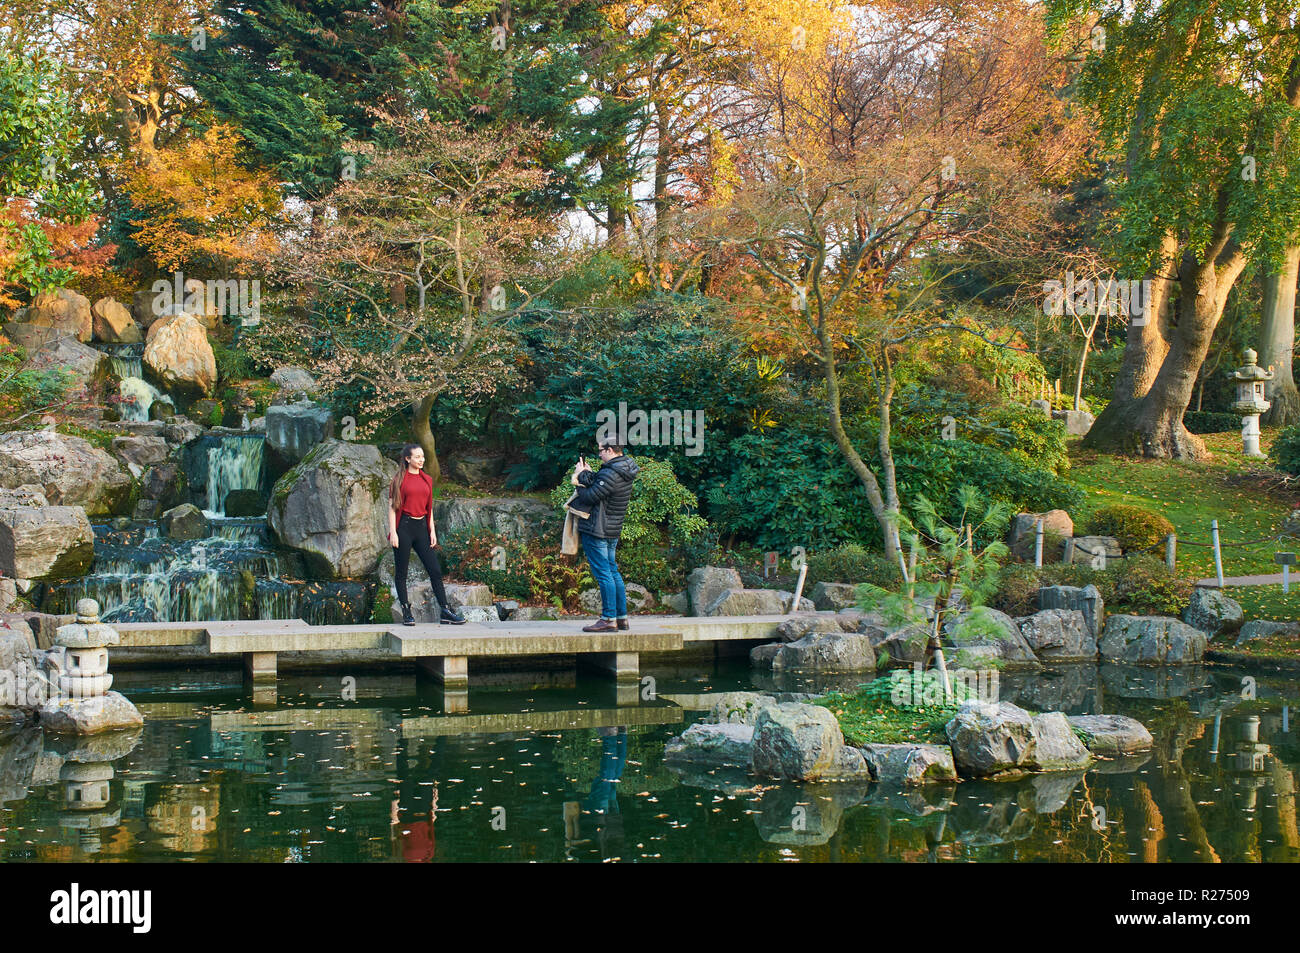 Sightseers in the Kyoto Garden, Holland Park, West London UK - Stock Image